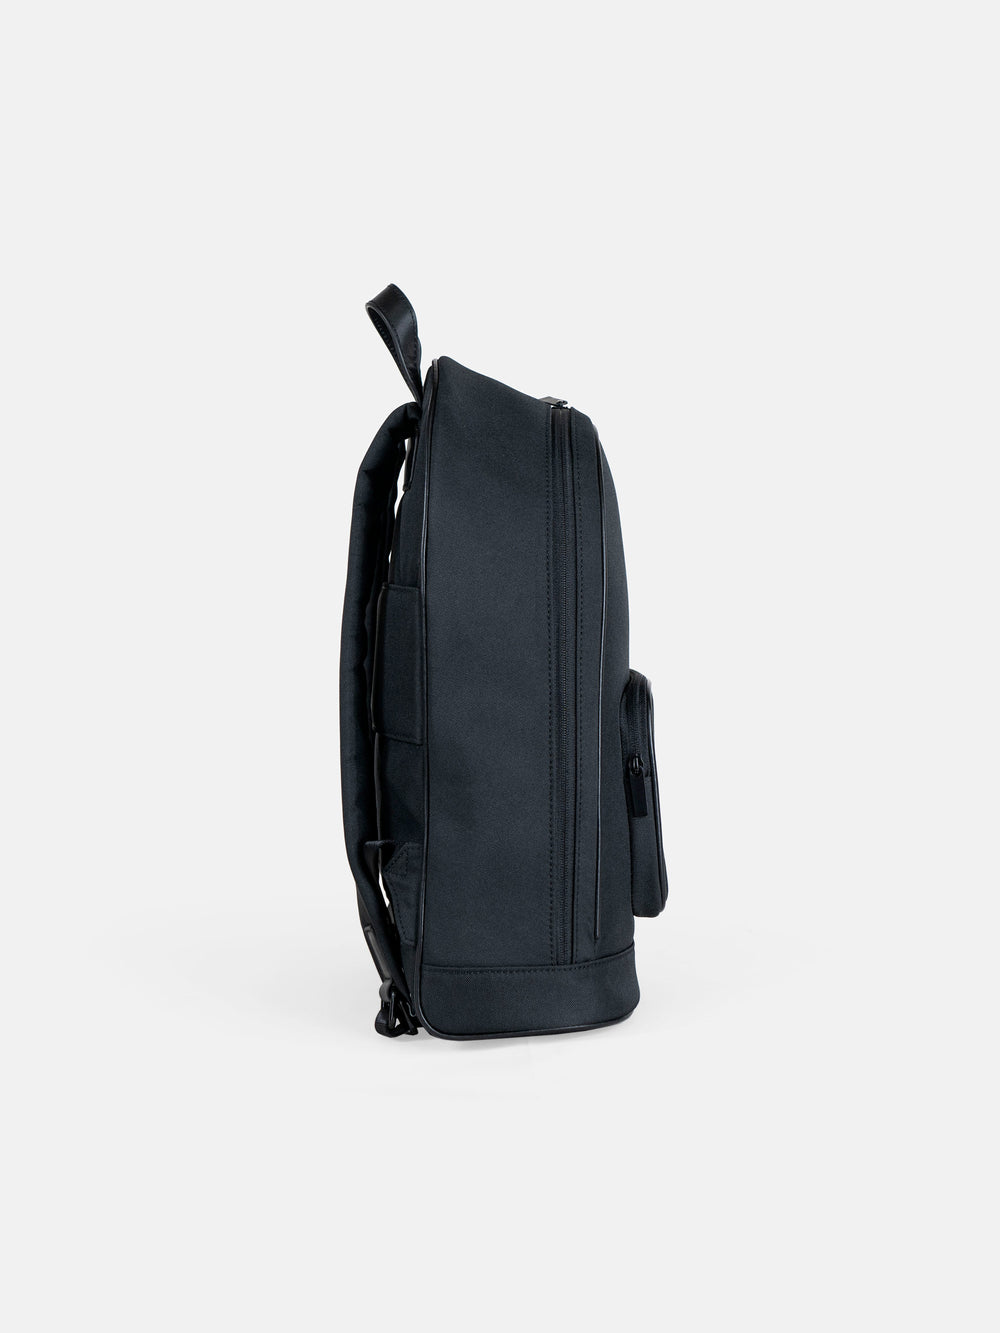 c30 stylish black backpack